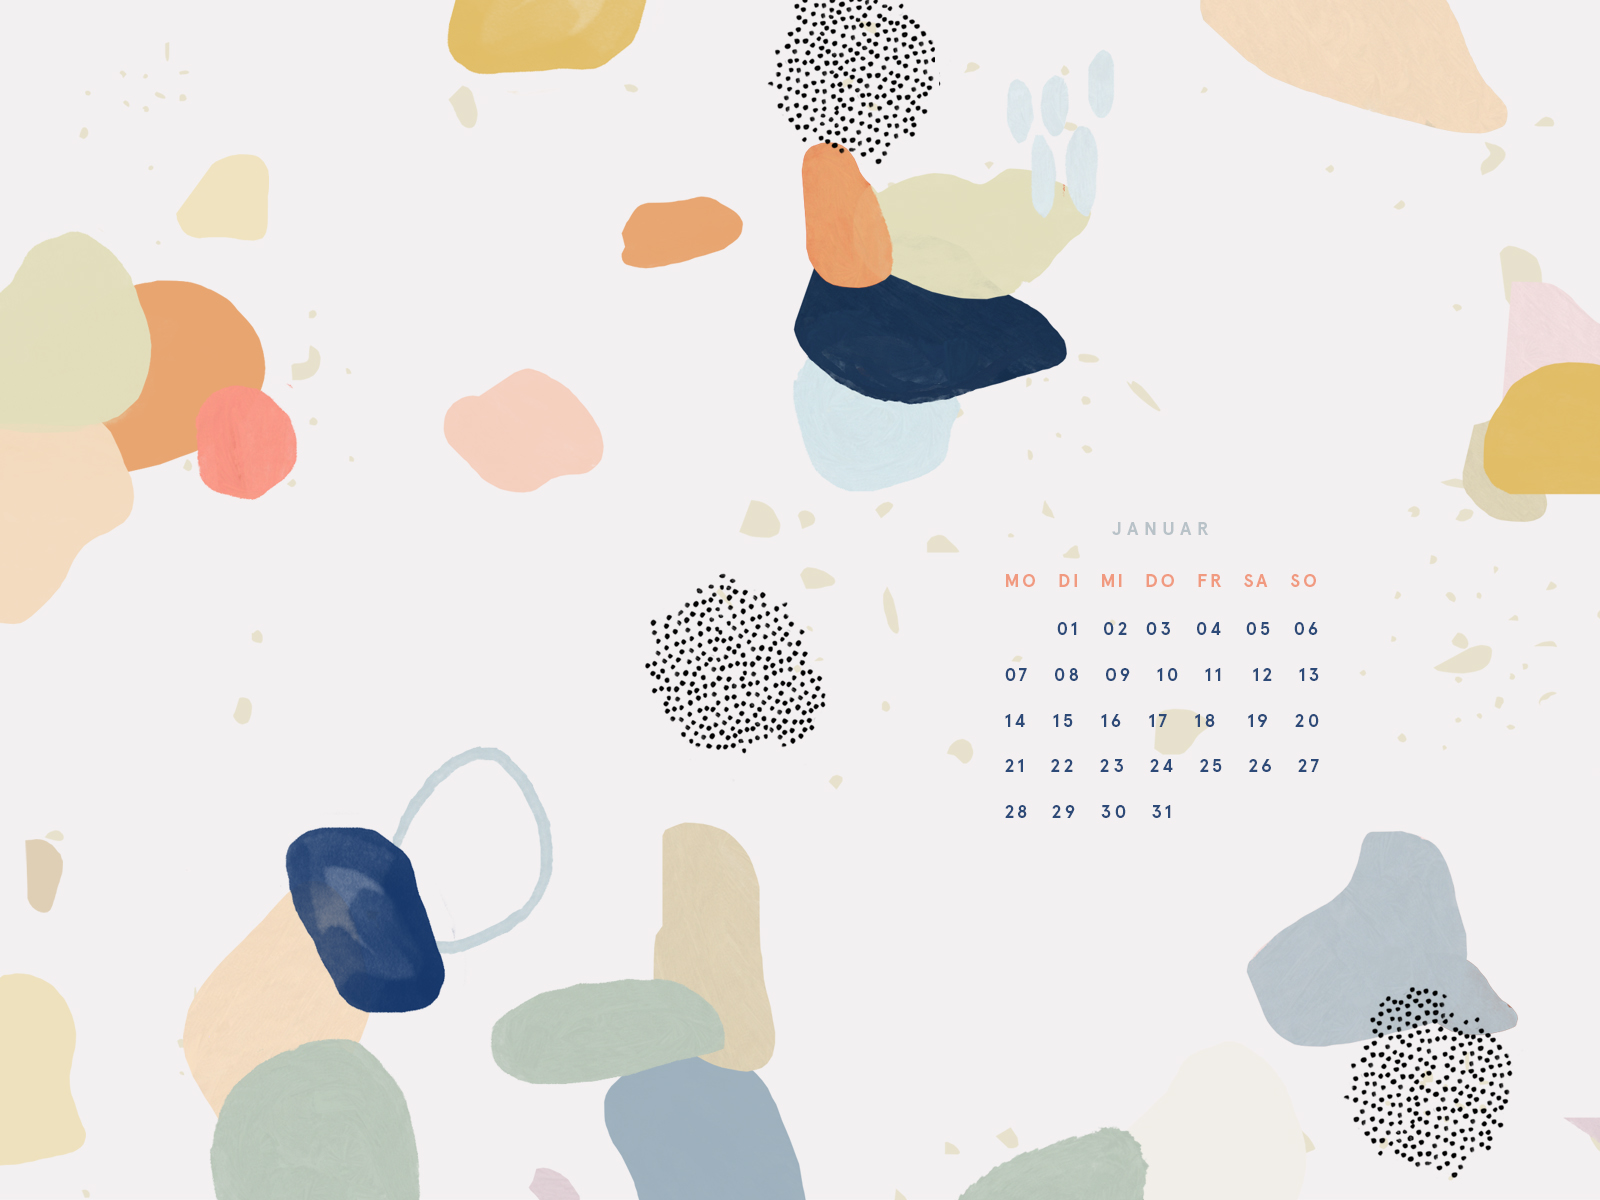 Free Desktop Wallpaper Januar 2019